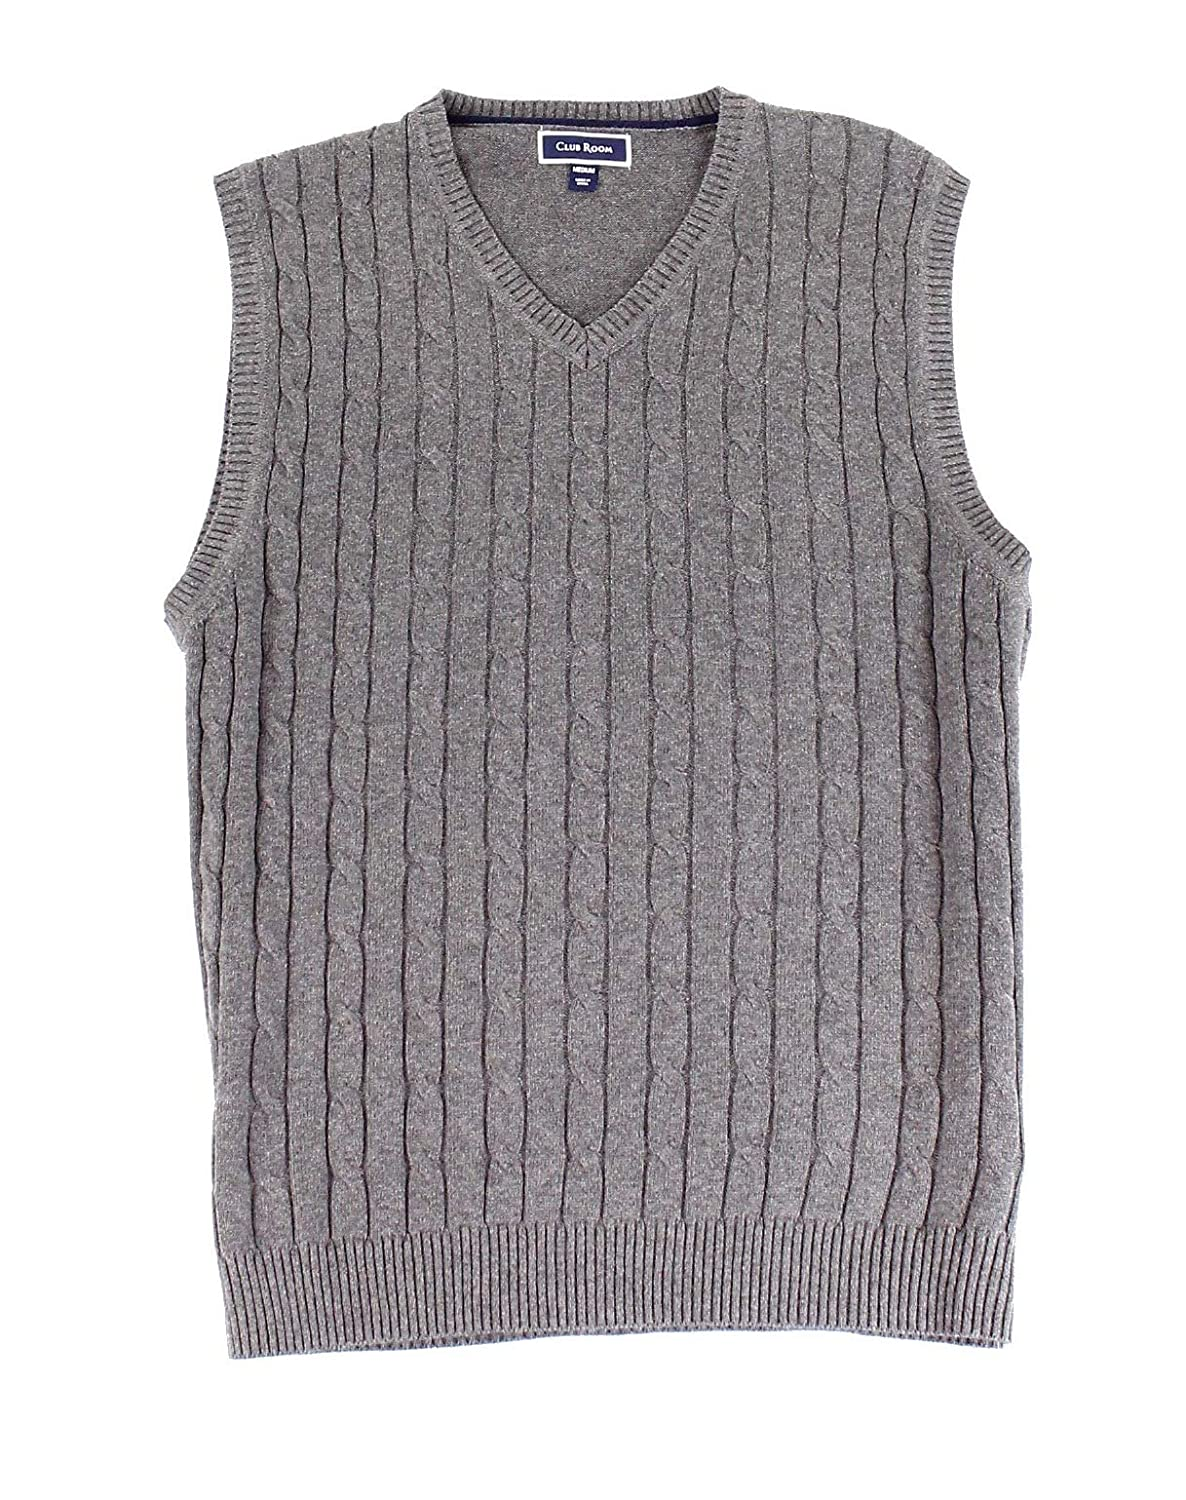 Club Room Men's Cable-Knit Cotton Sweater Vest, 29336CRVST